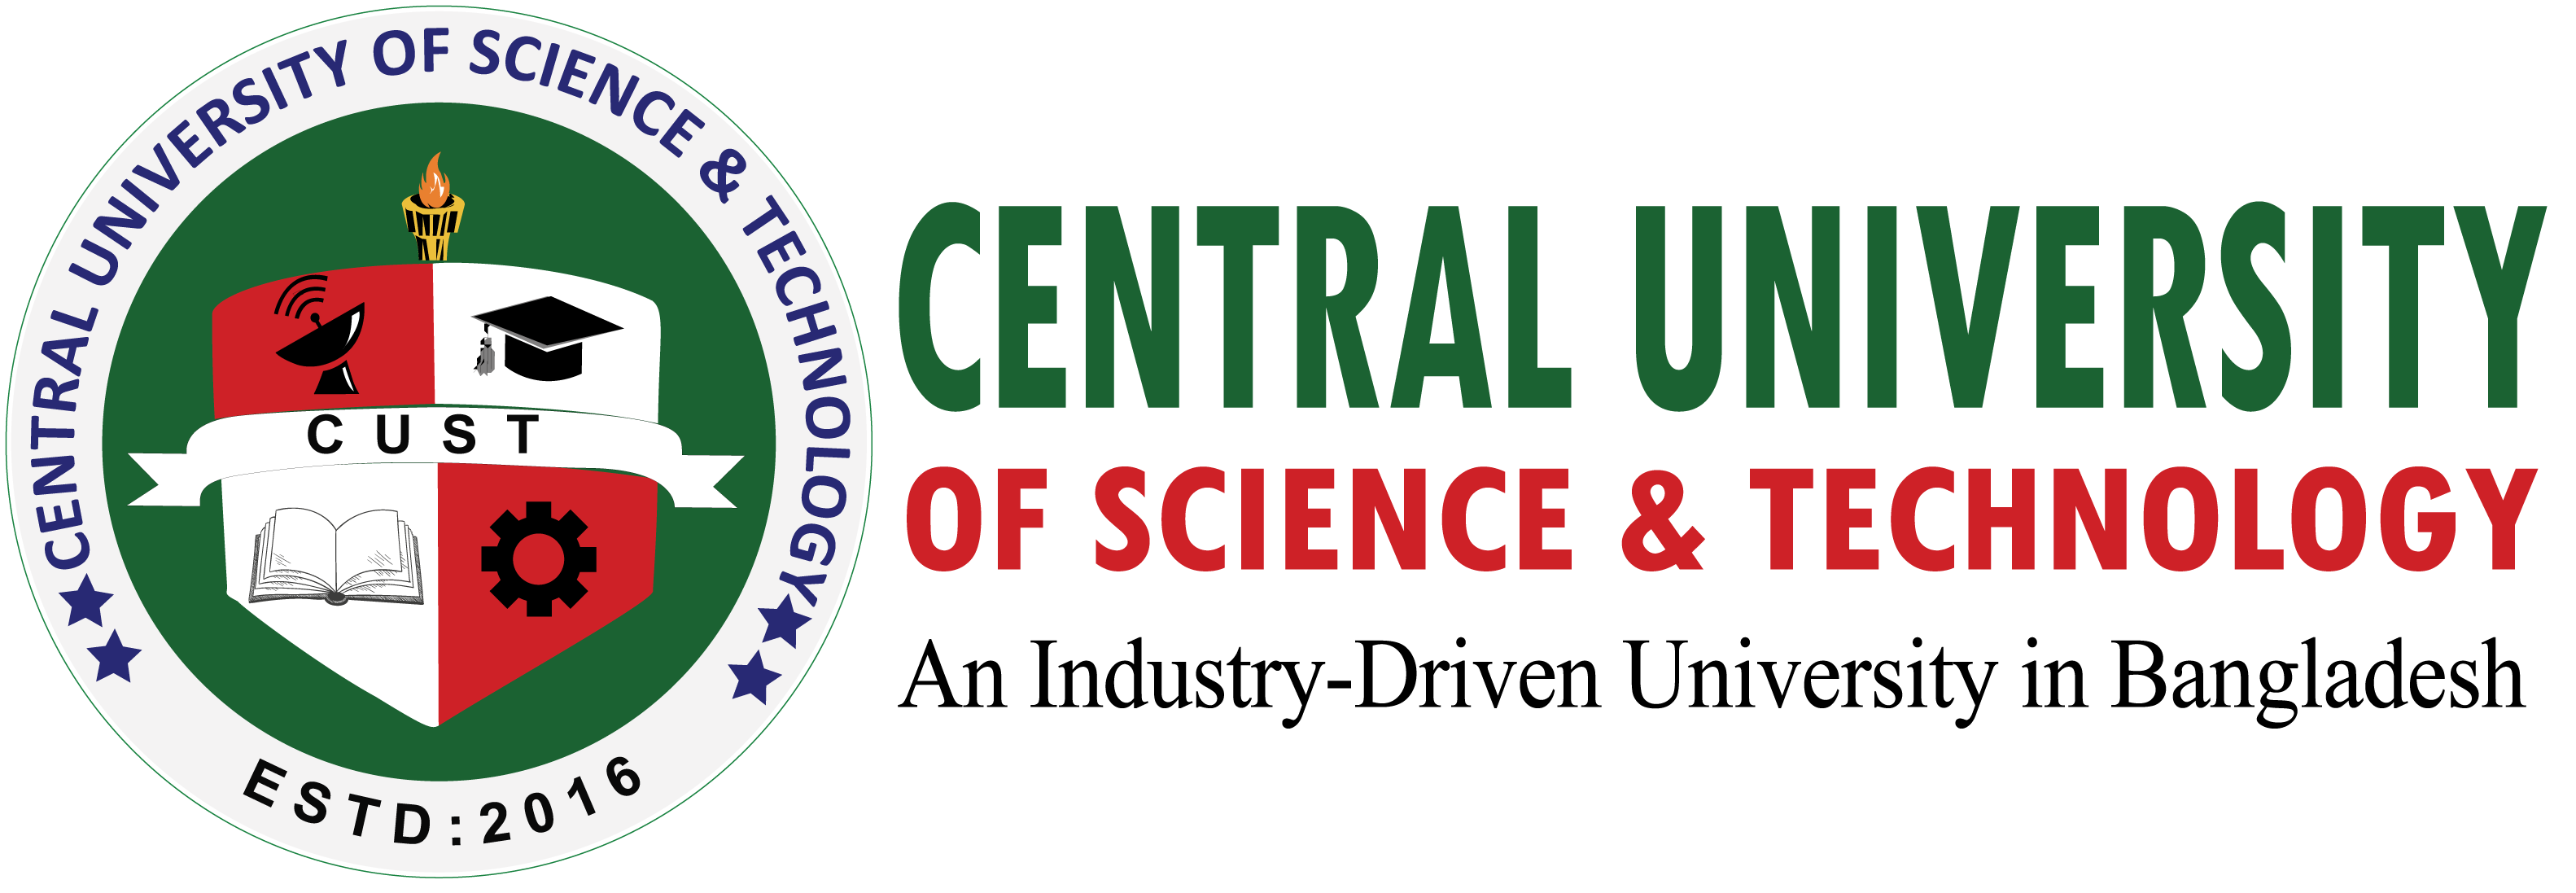 The Academic Council - Central University of Science & Technology